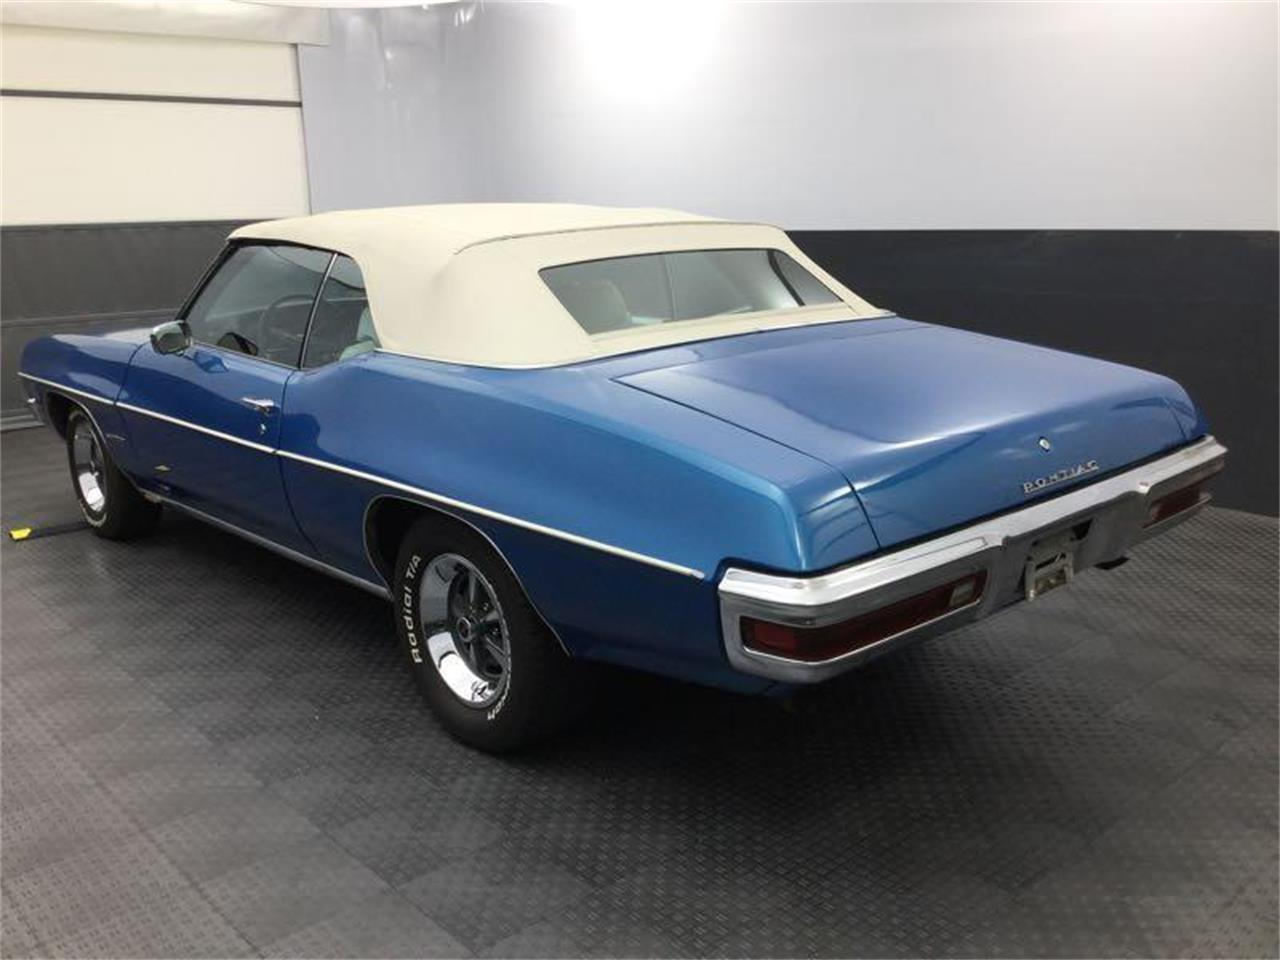 Large Picture of 1972 Pontiac LeMans located in Virginia Auction Vehicle Offered by Motley's Richmond Auto Auction - QWUA